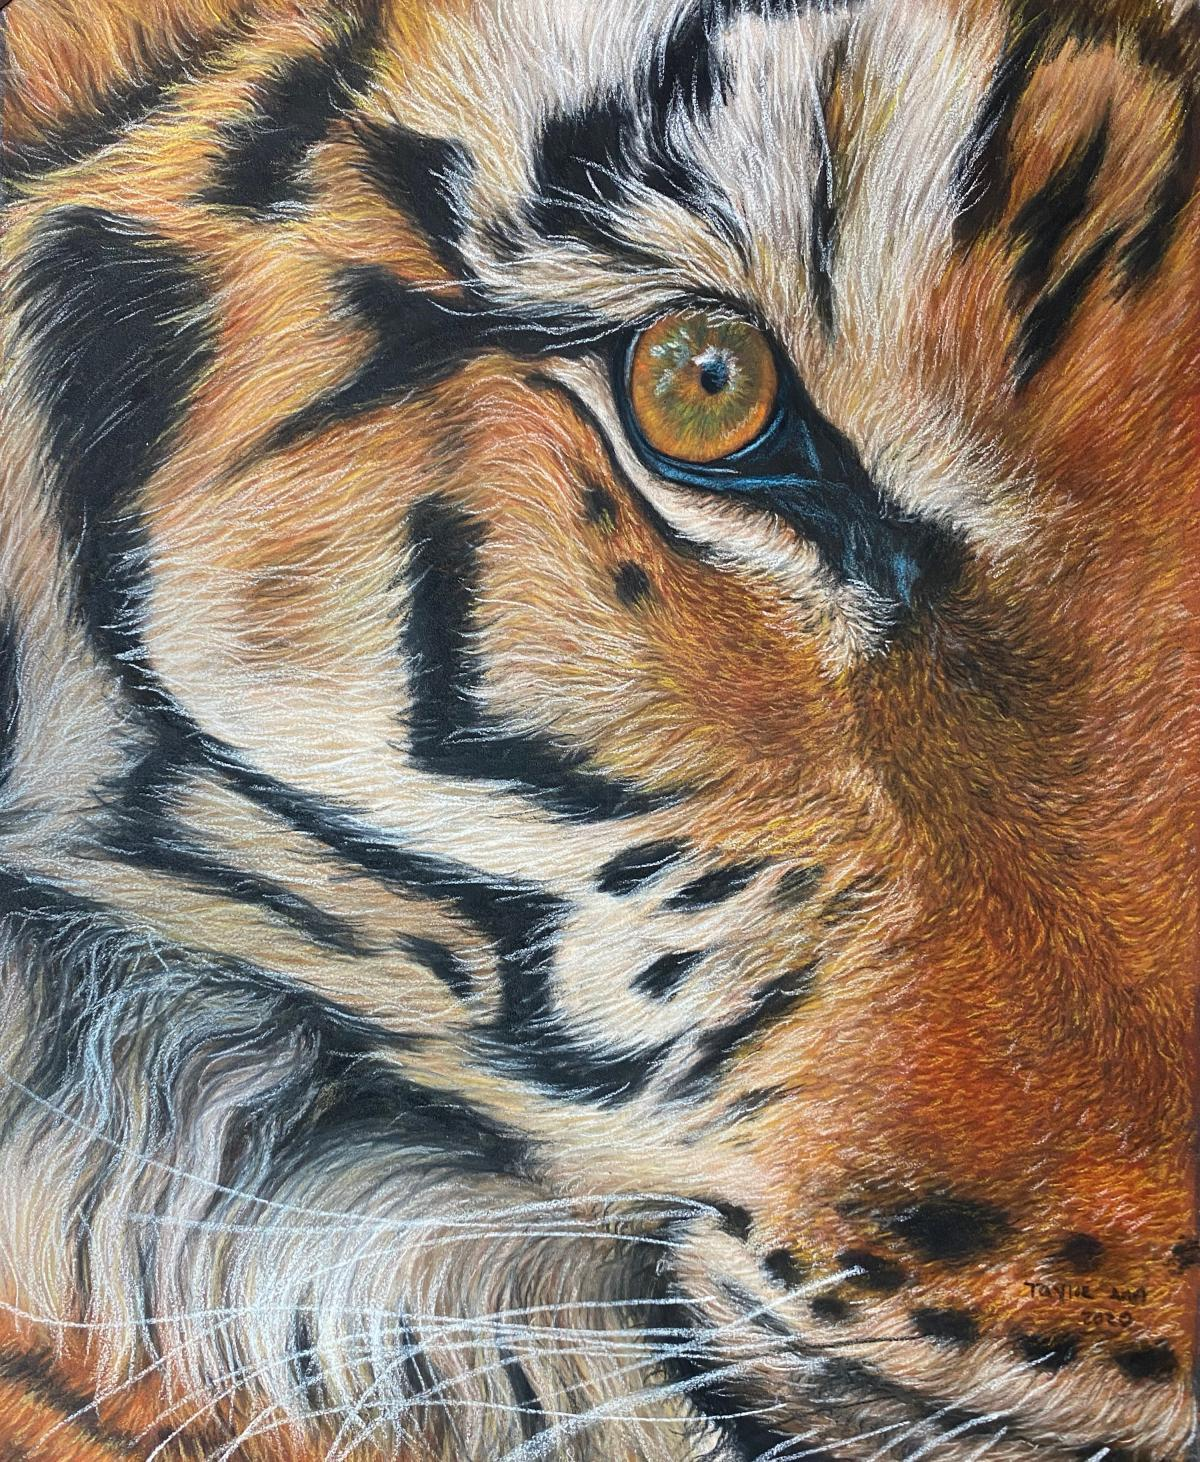   Wallhanging by Taylor Ann   Artists for Conservation